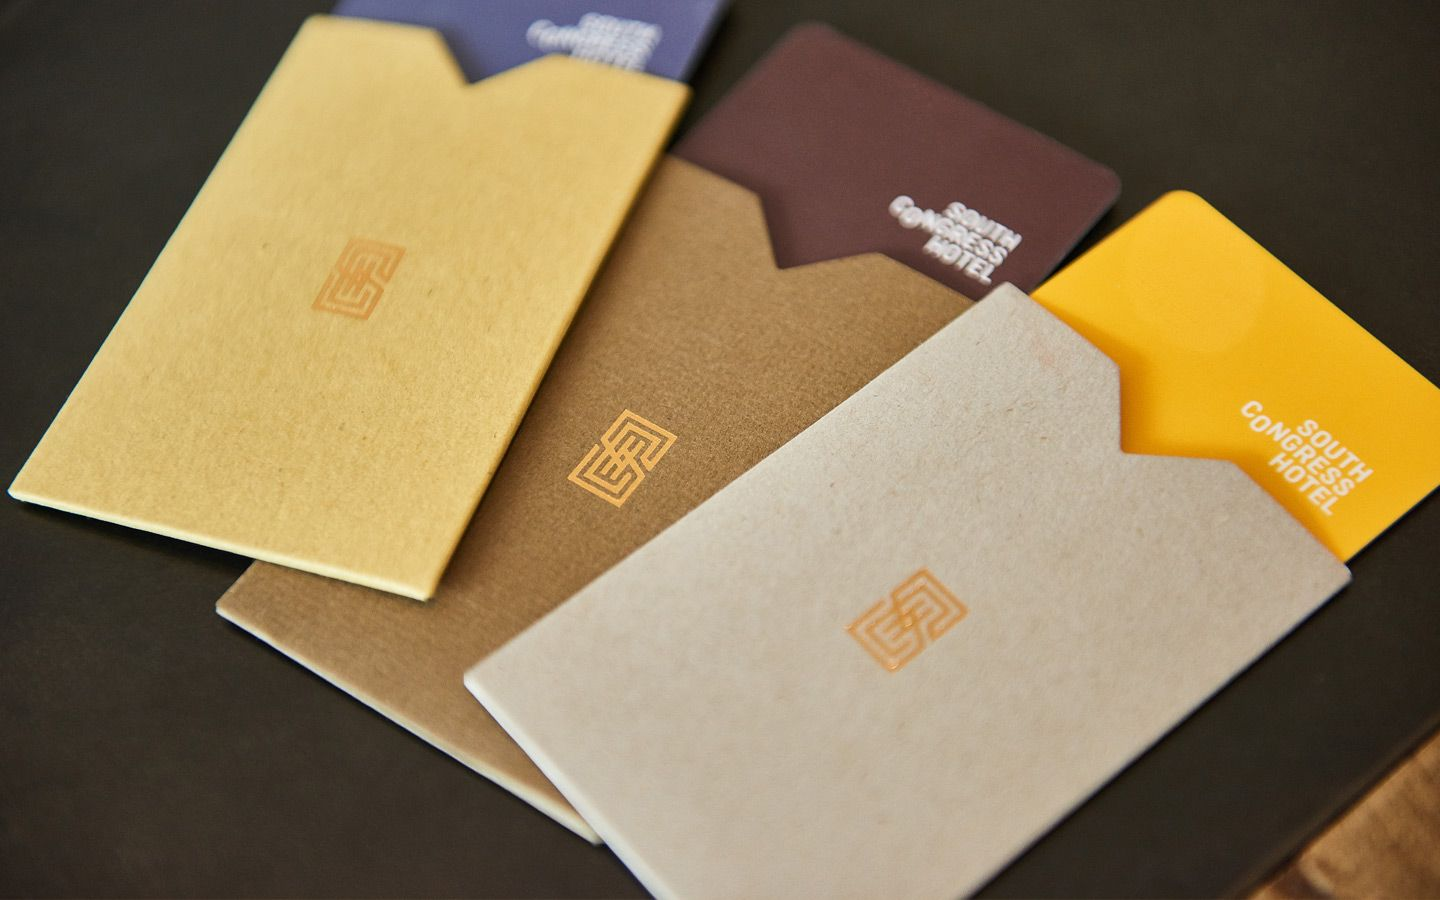 Foda Austin Design And Brand Development Sustainable Food Center Hotel Key Cards Voucher Design Hotel Card